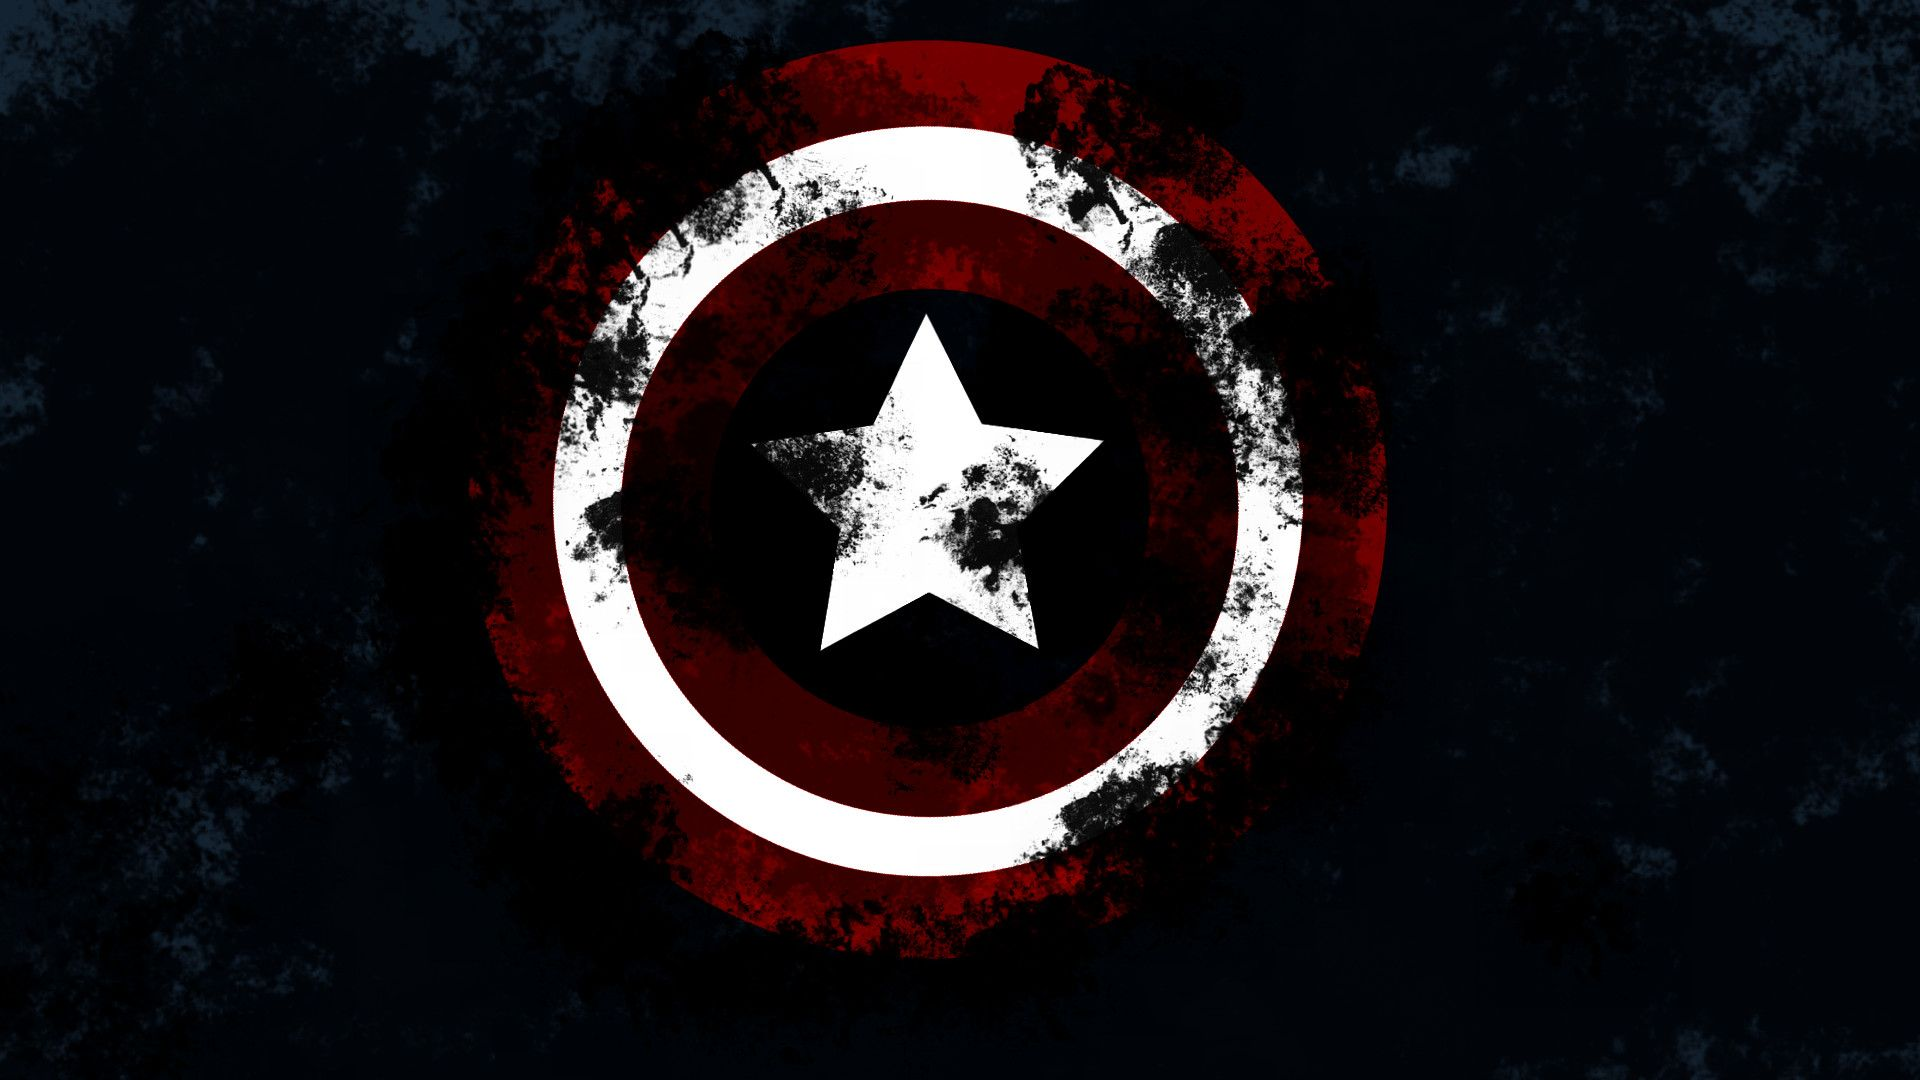 Captain America Shield Wallpapers Top Free Captain America Shield